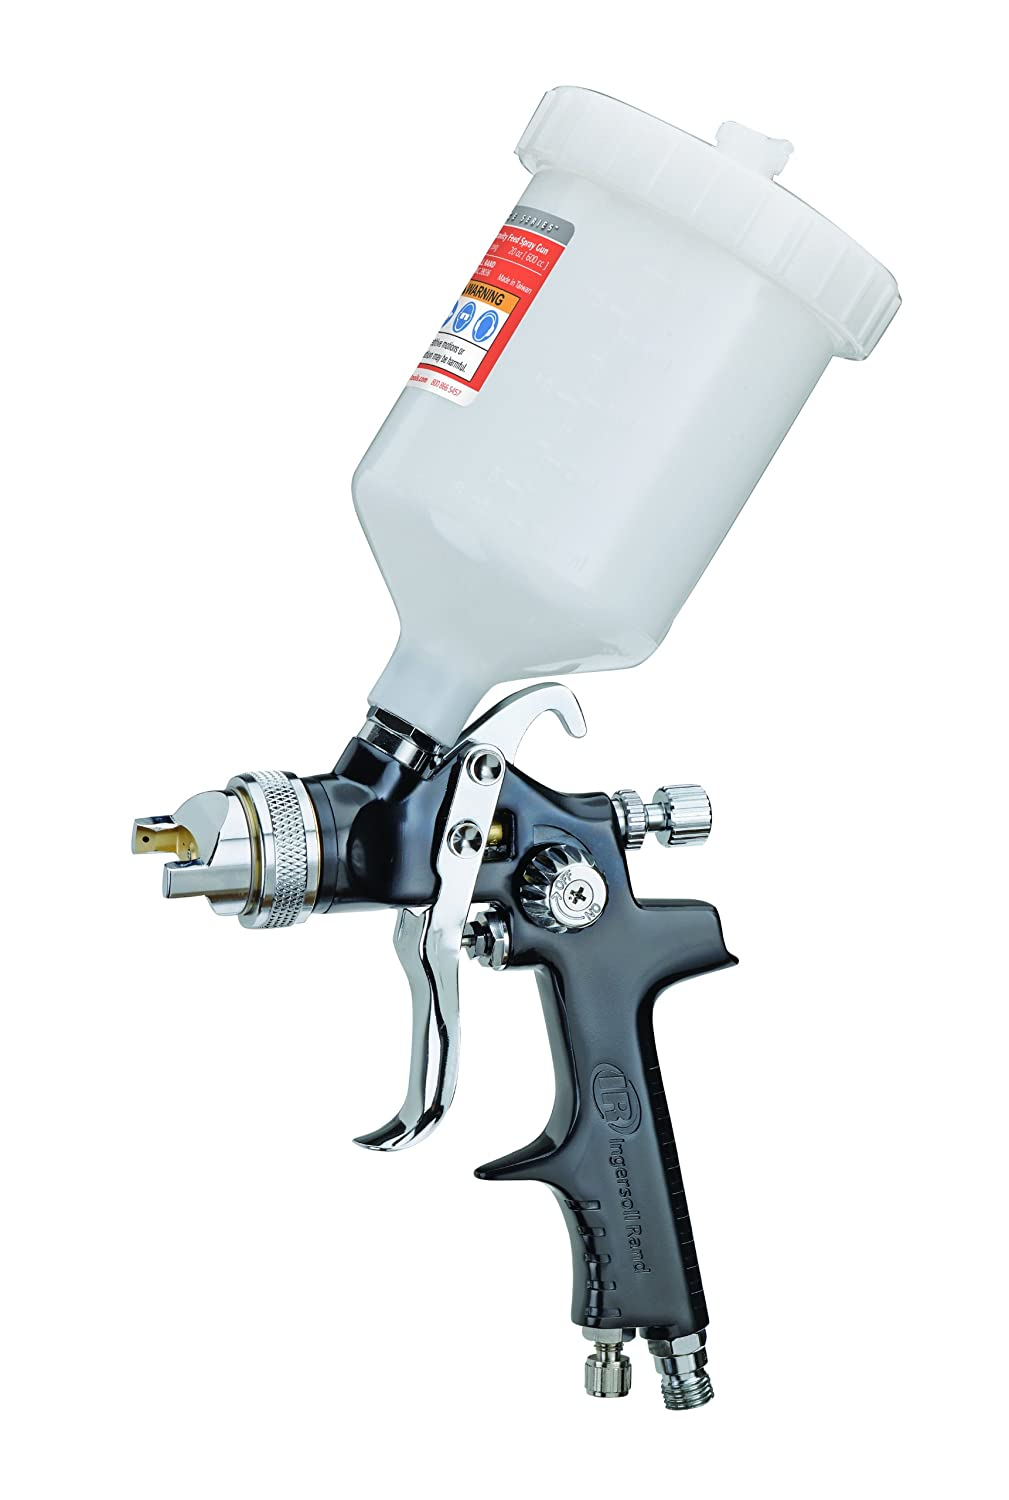 Delightful Paint Spray Tools Part - 9: Amazon.com: Ingersoll Rand 210G Edge Series Gravity Feed Spray Gun, Black:  Home Improvement